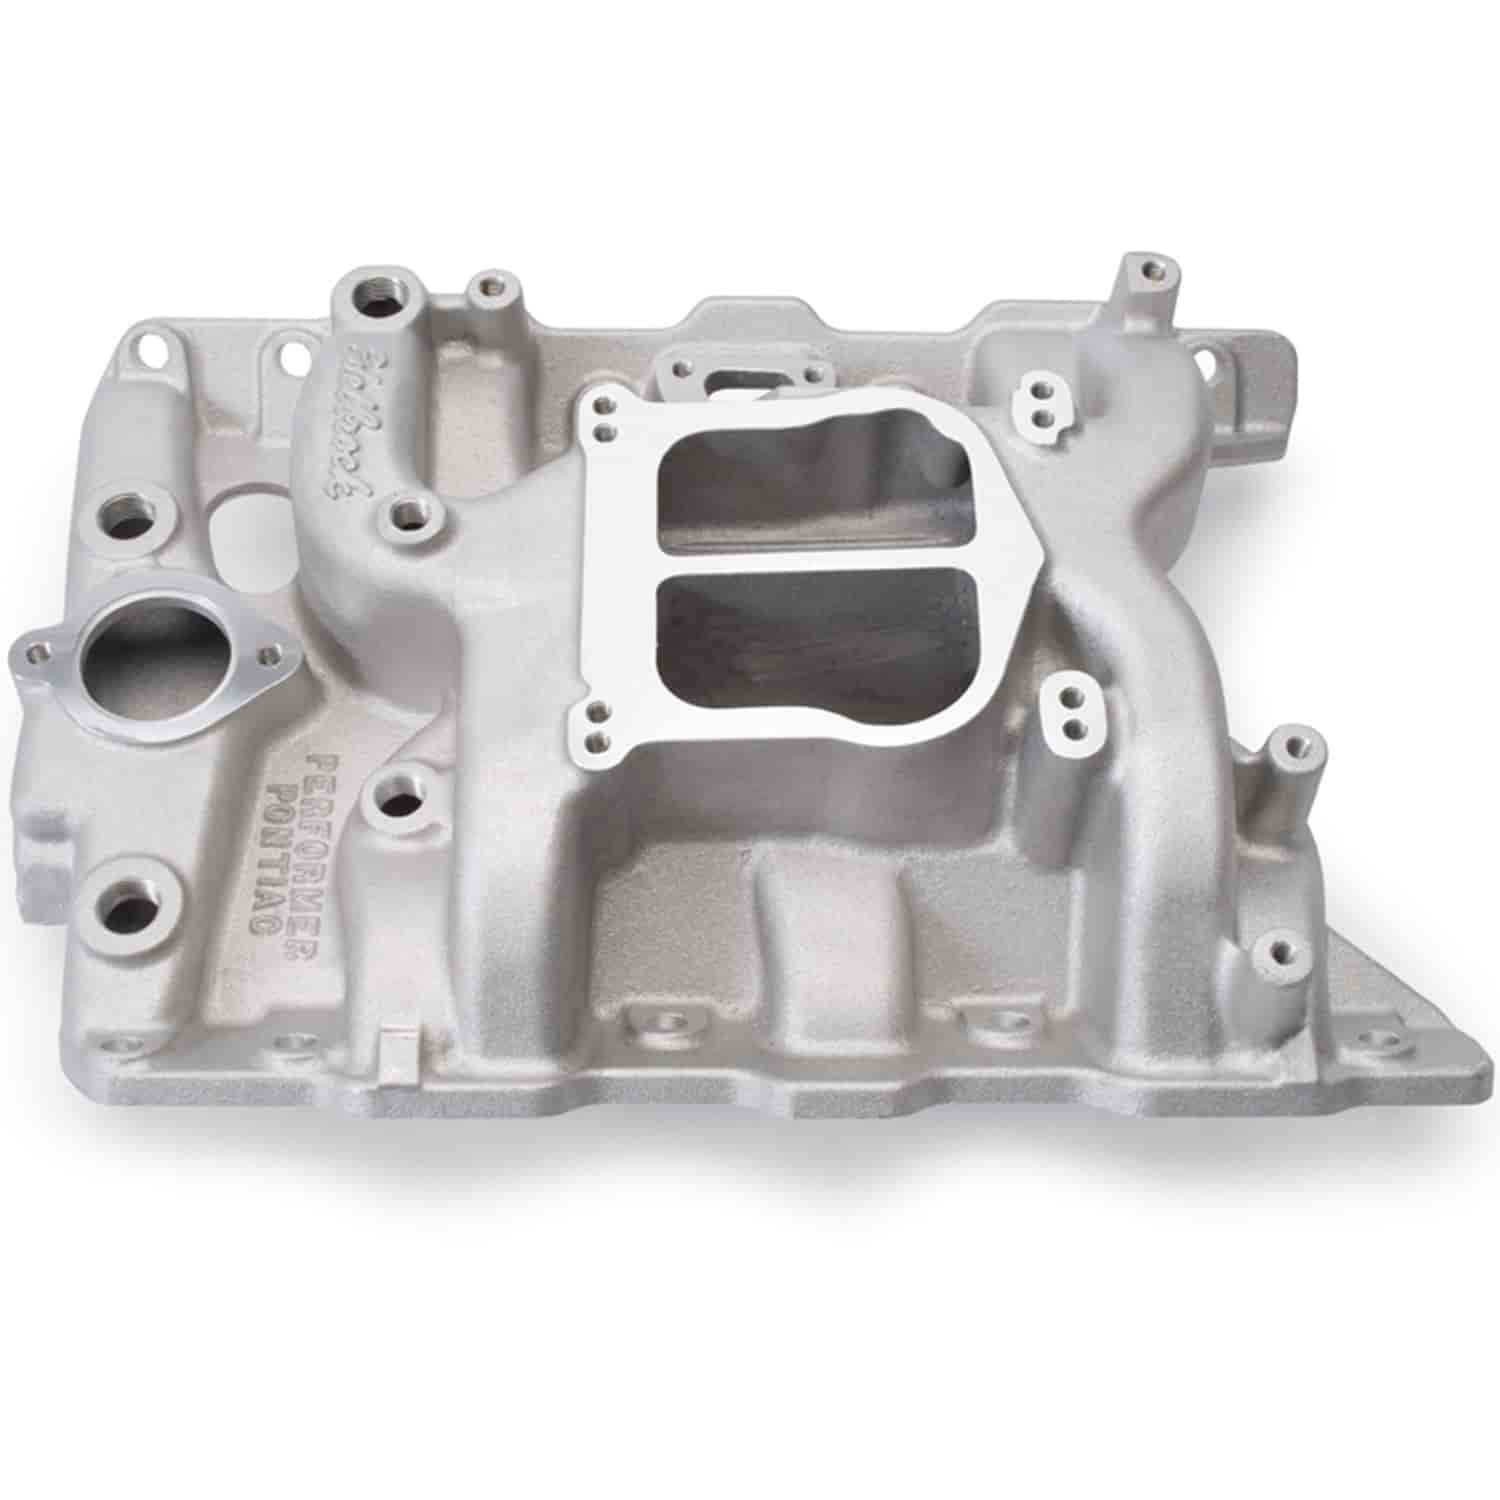 Edelbrock #3756 - Edelbrock Performer Manifolds for Pontiac